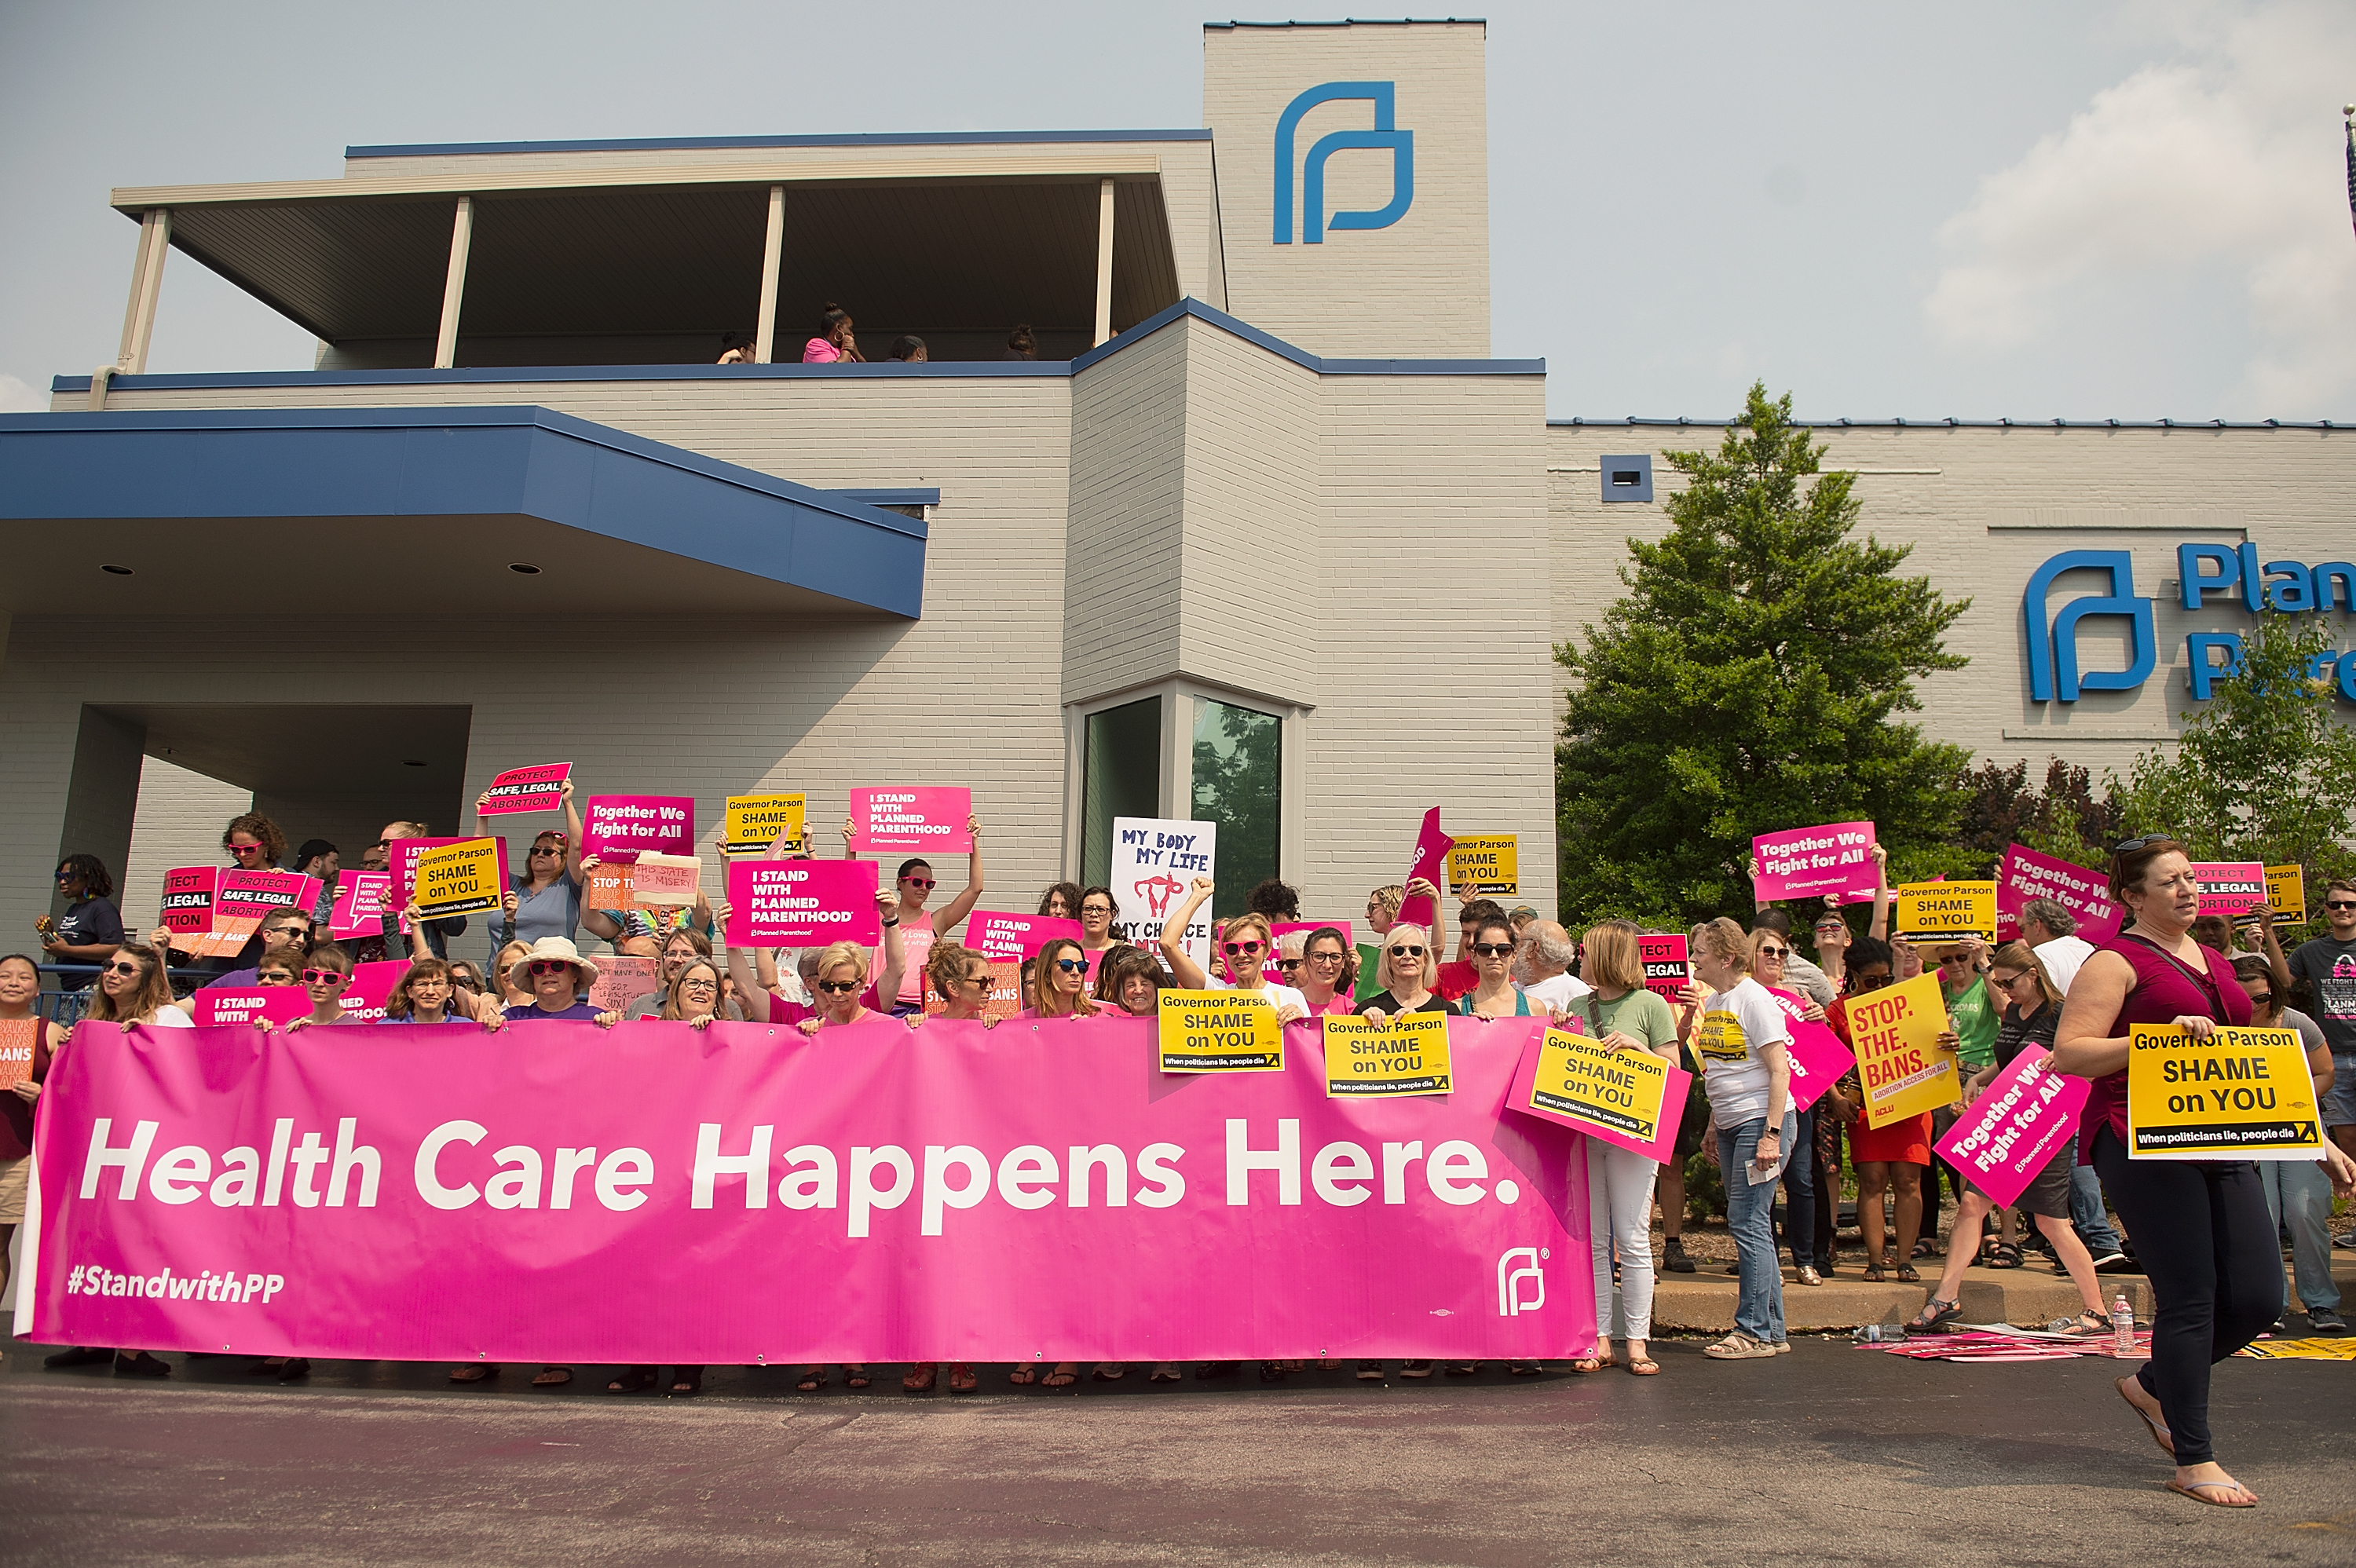 ST LOUIS, MO - MAY 31: Pro-Choice supporters, along with Planned Parenthood staff celebrate and rally outside the Planned Parenthood Reproductive Health Services Center on May 31, 2019 in St Louis, Missouri. (Photo by Michael Thomas/Getty Images)